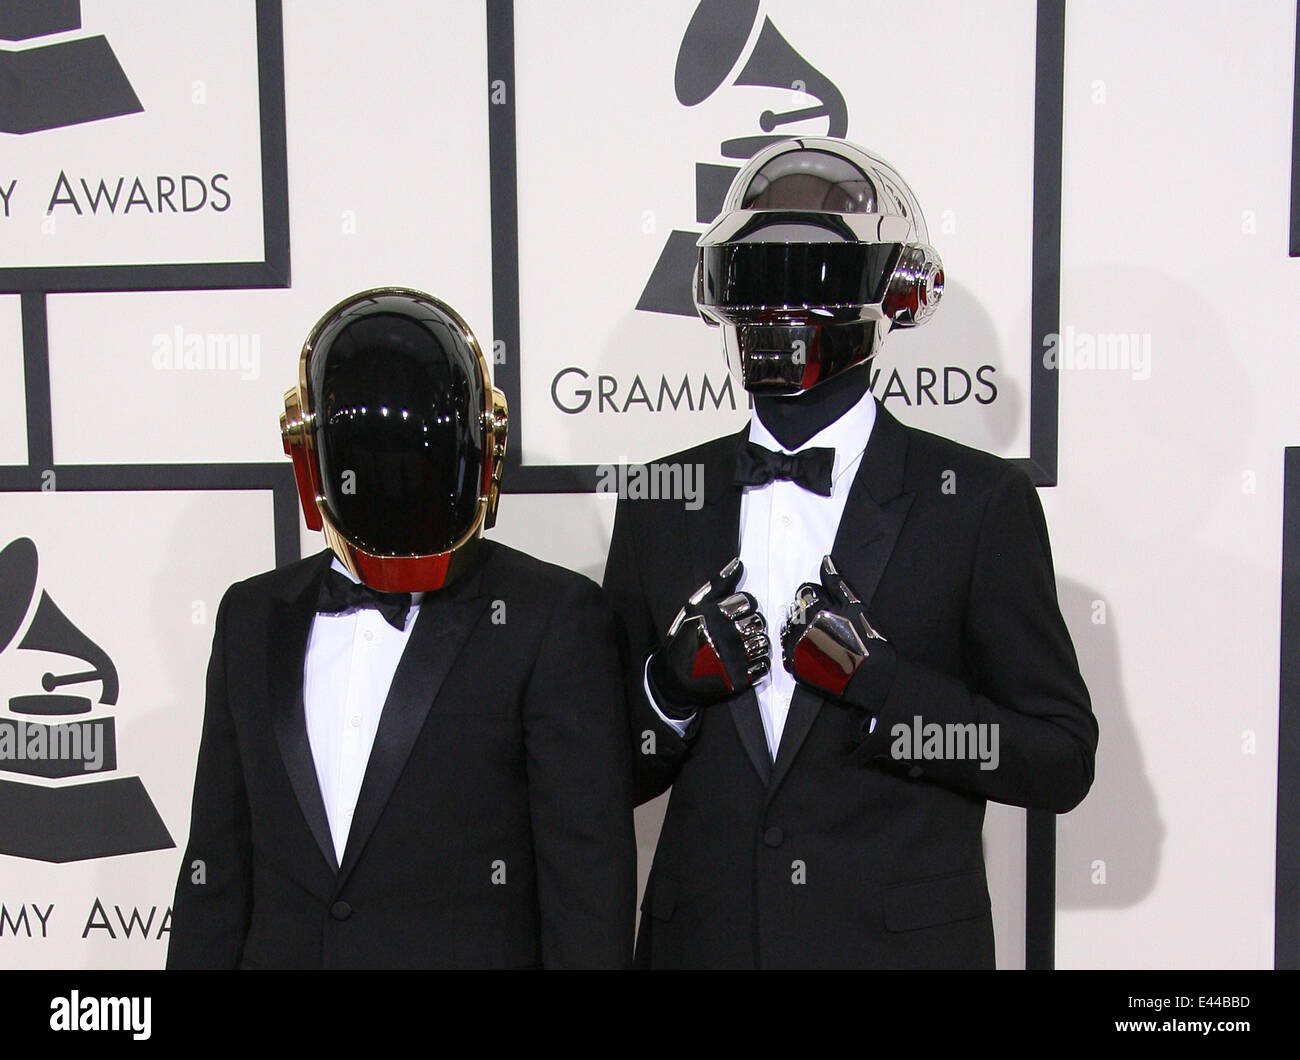 The 56th Annual GRAMMY Awards (2014) held at the Staples Center in Los Angeles, CA. 26-1-2014  Featuring: Daft Punk - Stock Image